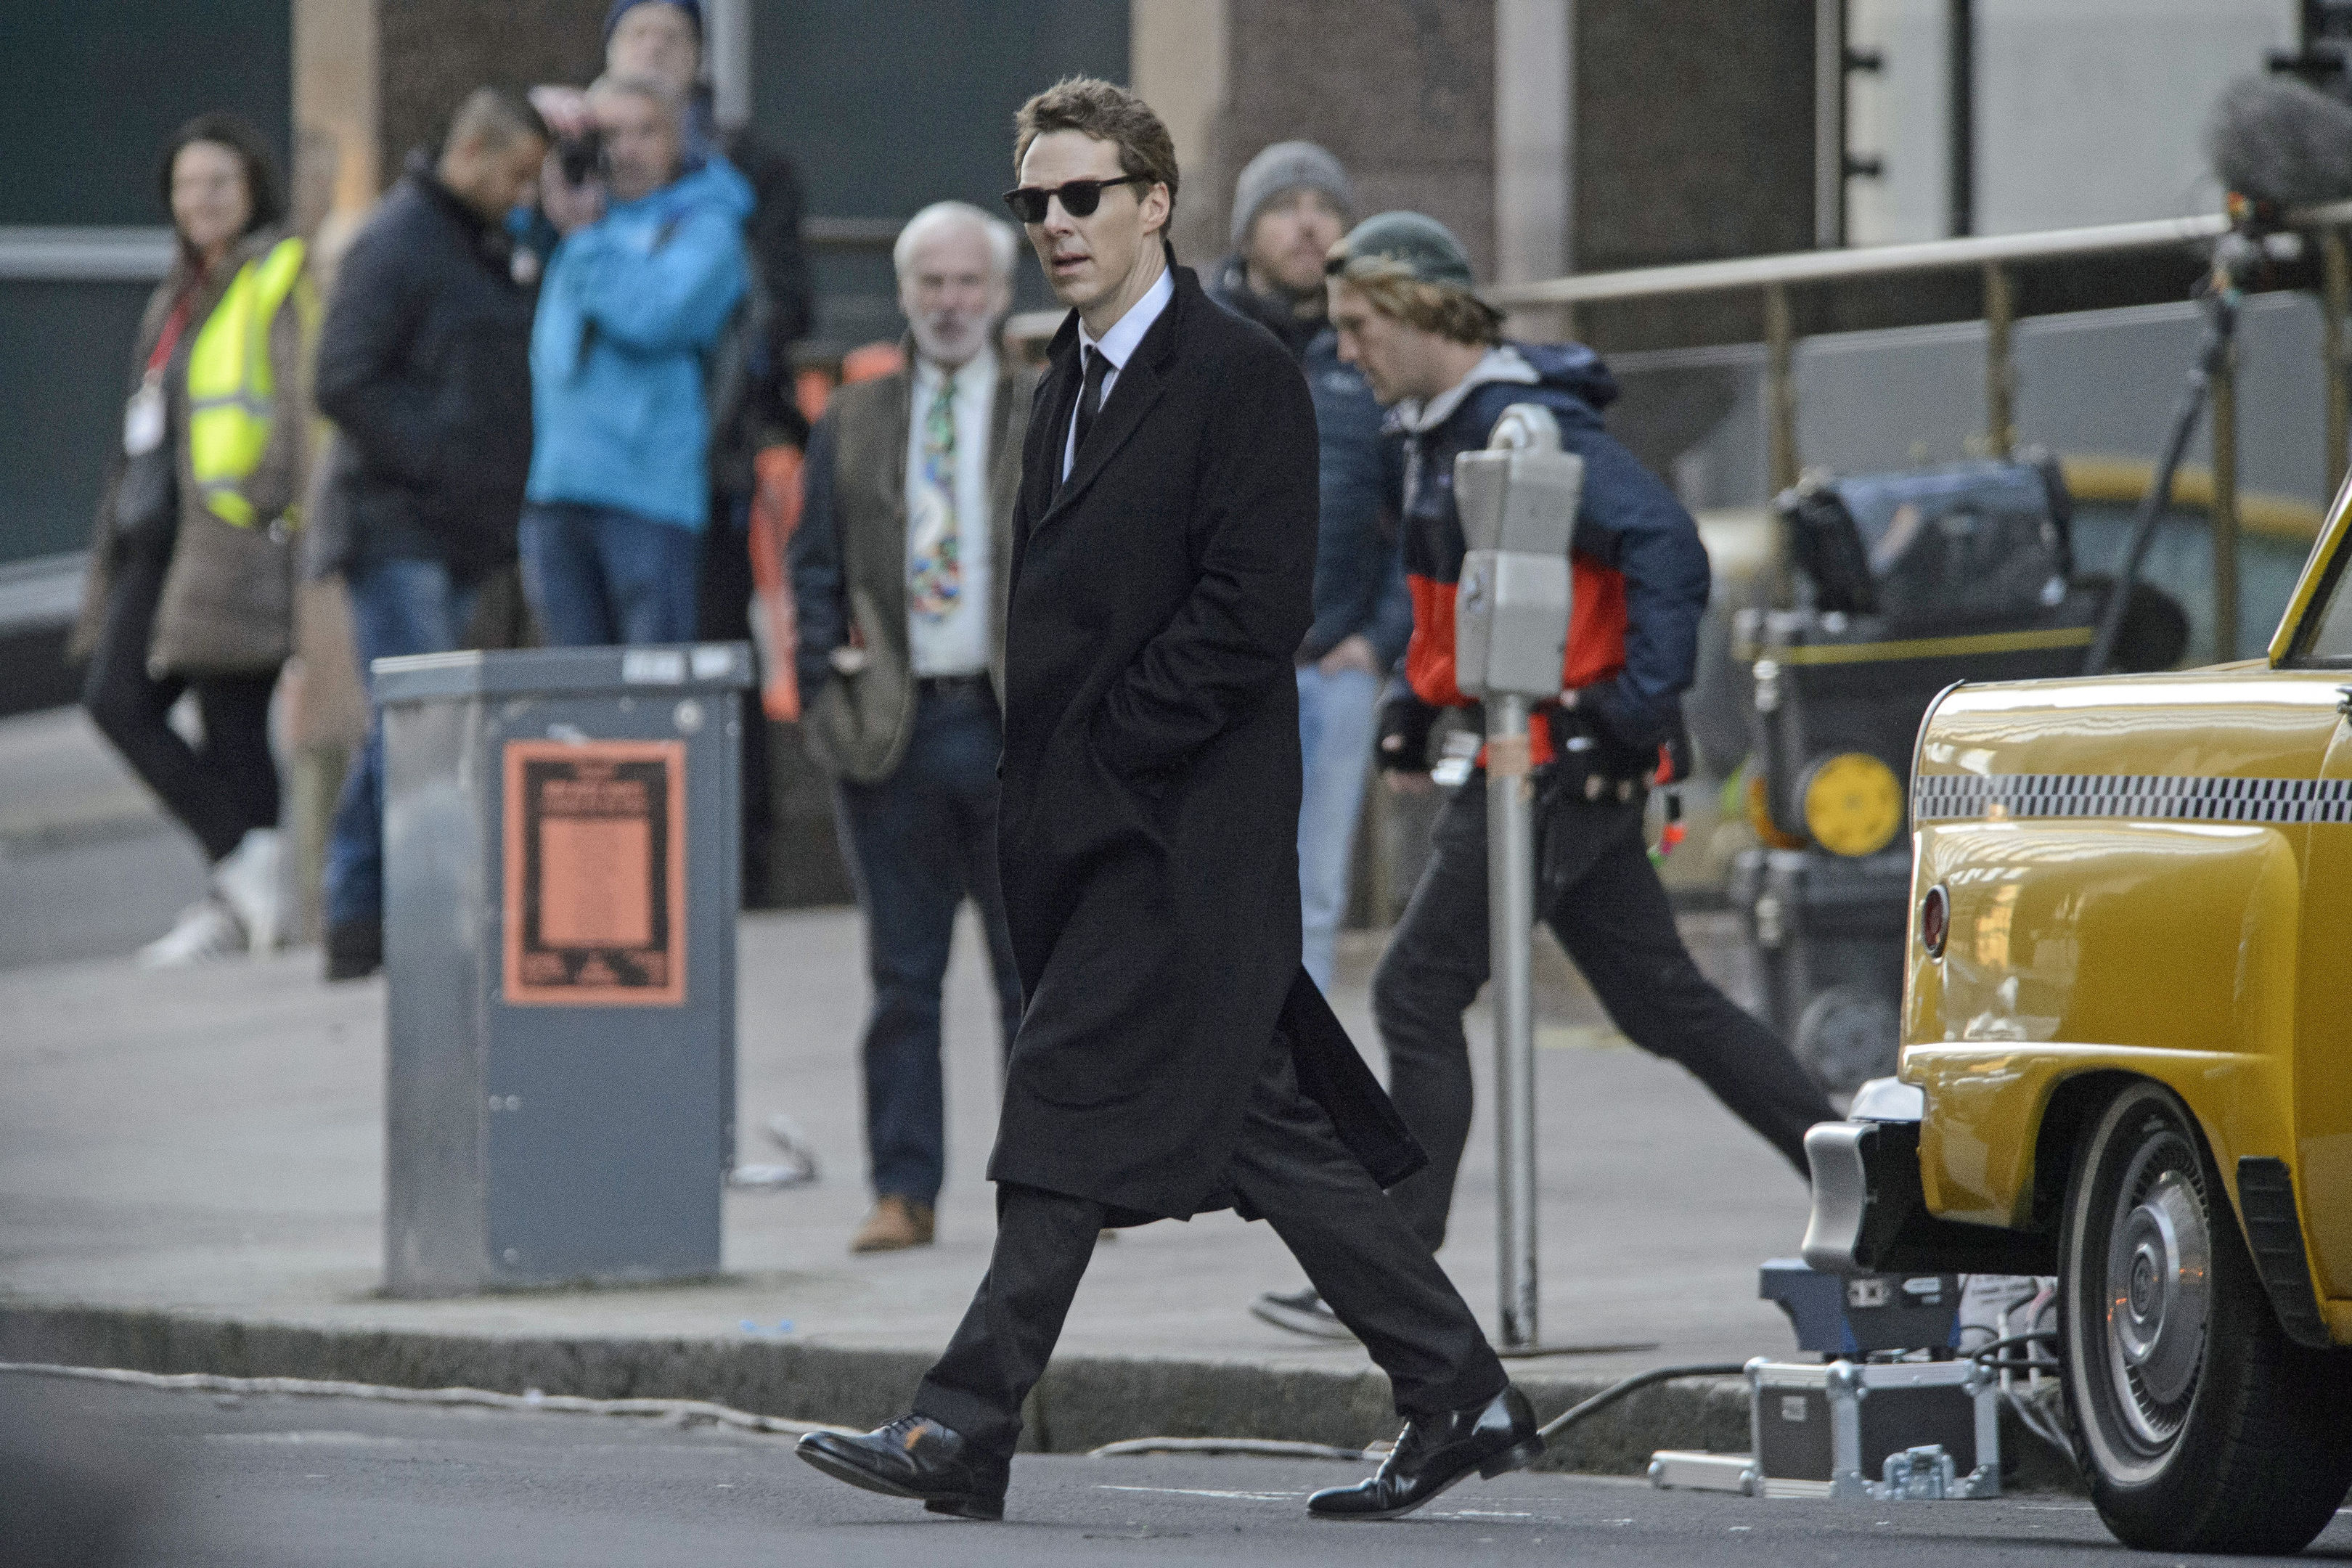 Actor Benedict Cumberbatch shooting scenes in Glasgow which was transformed into New York City for filming of the TV show Melrose. (John Linton/PA Wire)